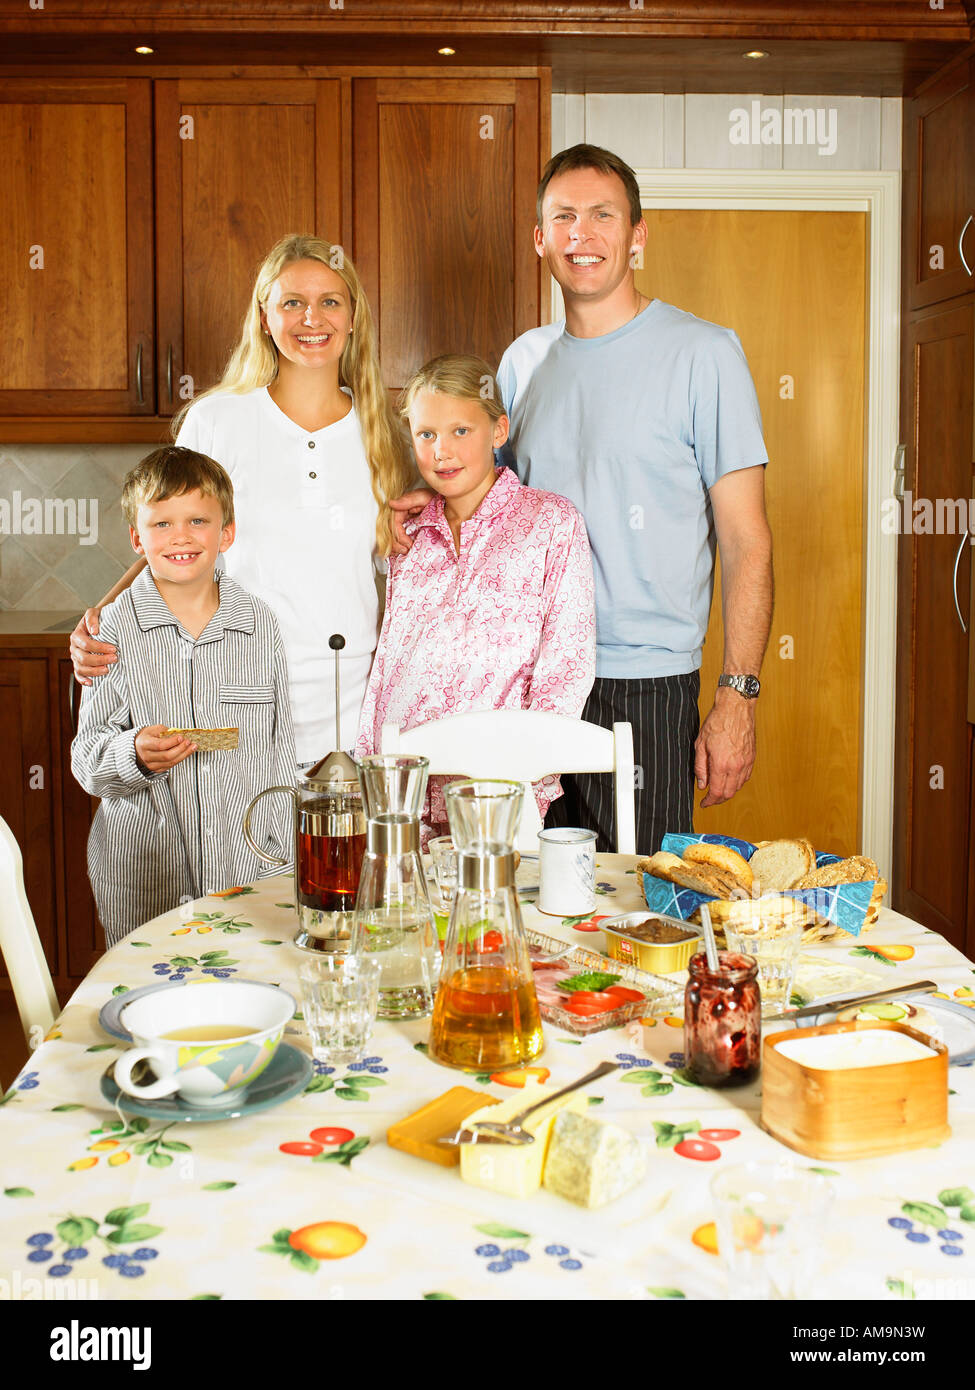 Family standing in kitchen smiling with breakfast on table. - Stock Image